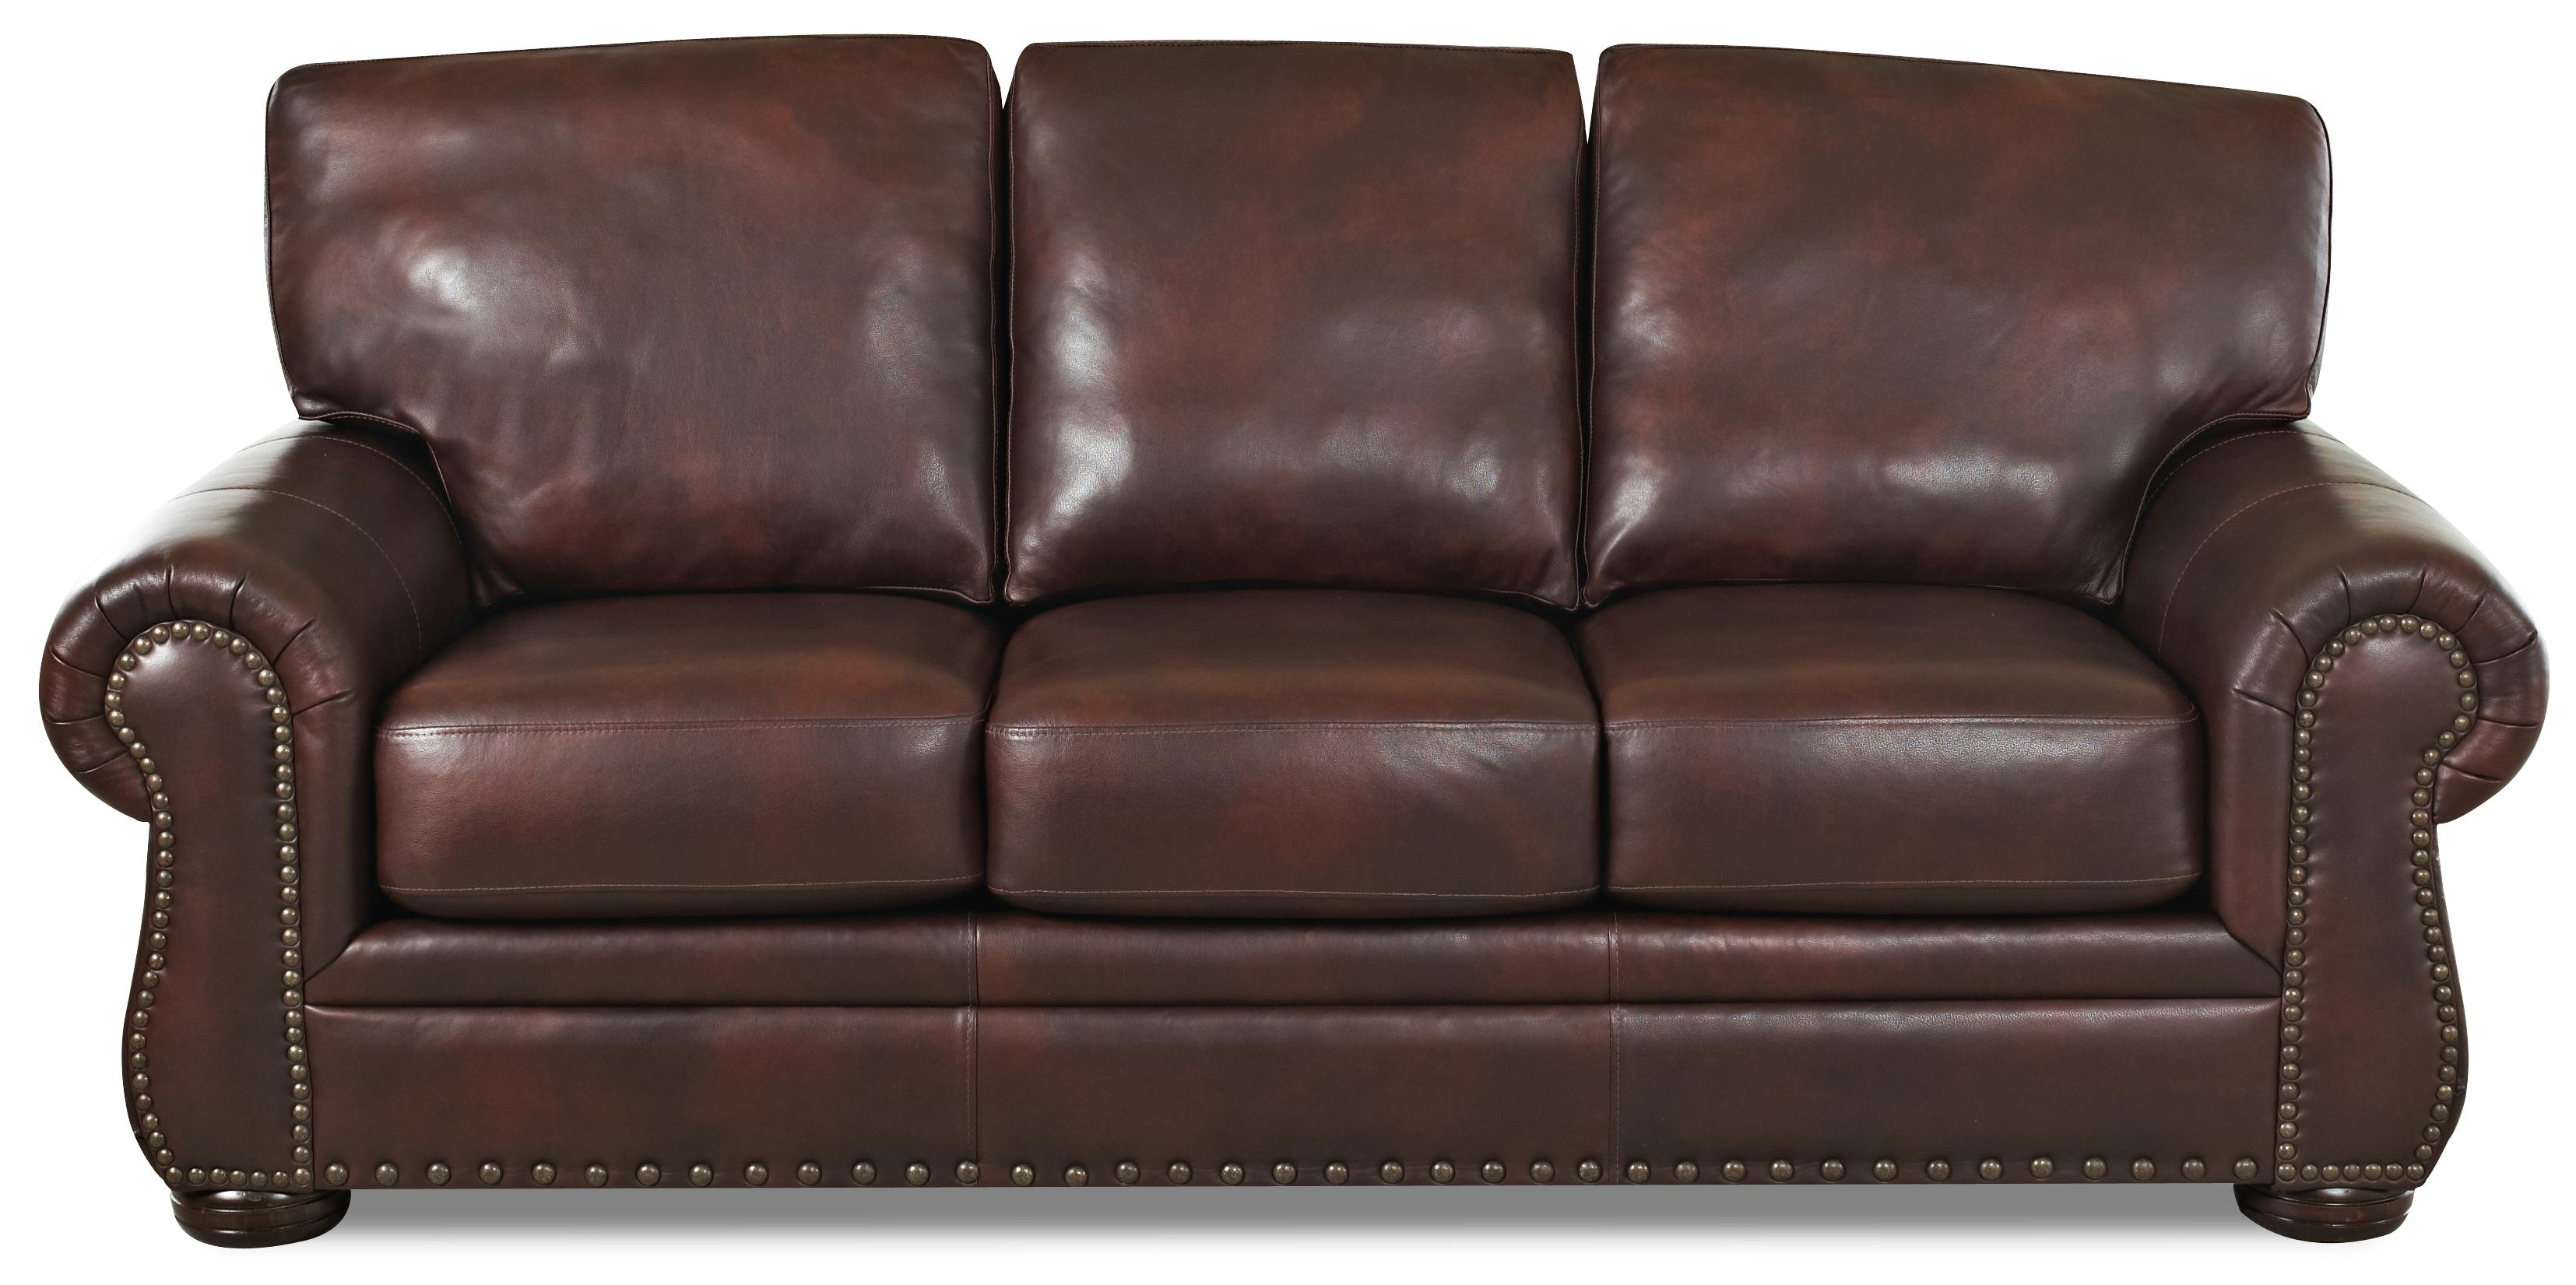 Klaussner Tomoka Transitional Leather Stationary Sofa With Nail Head Trim Ahfa Dealer Locator